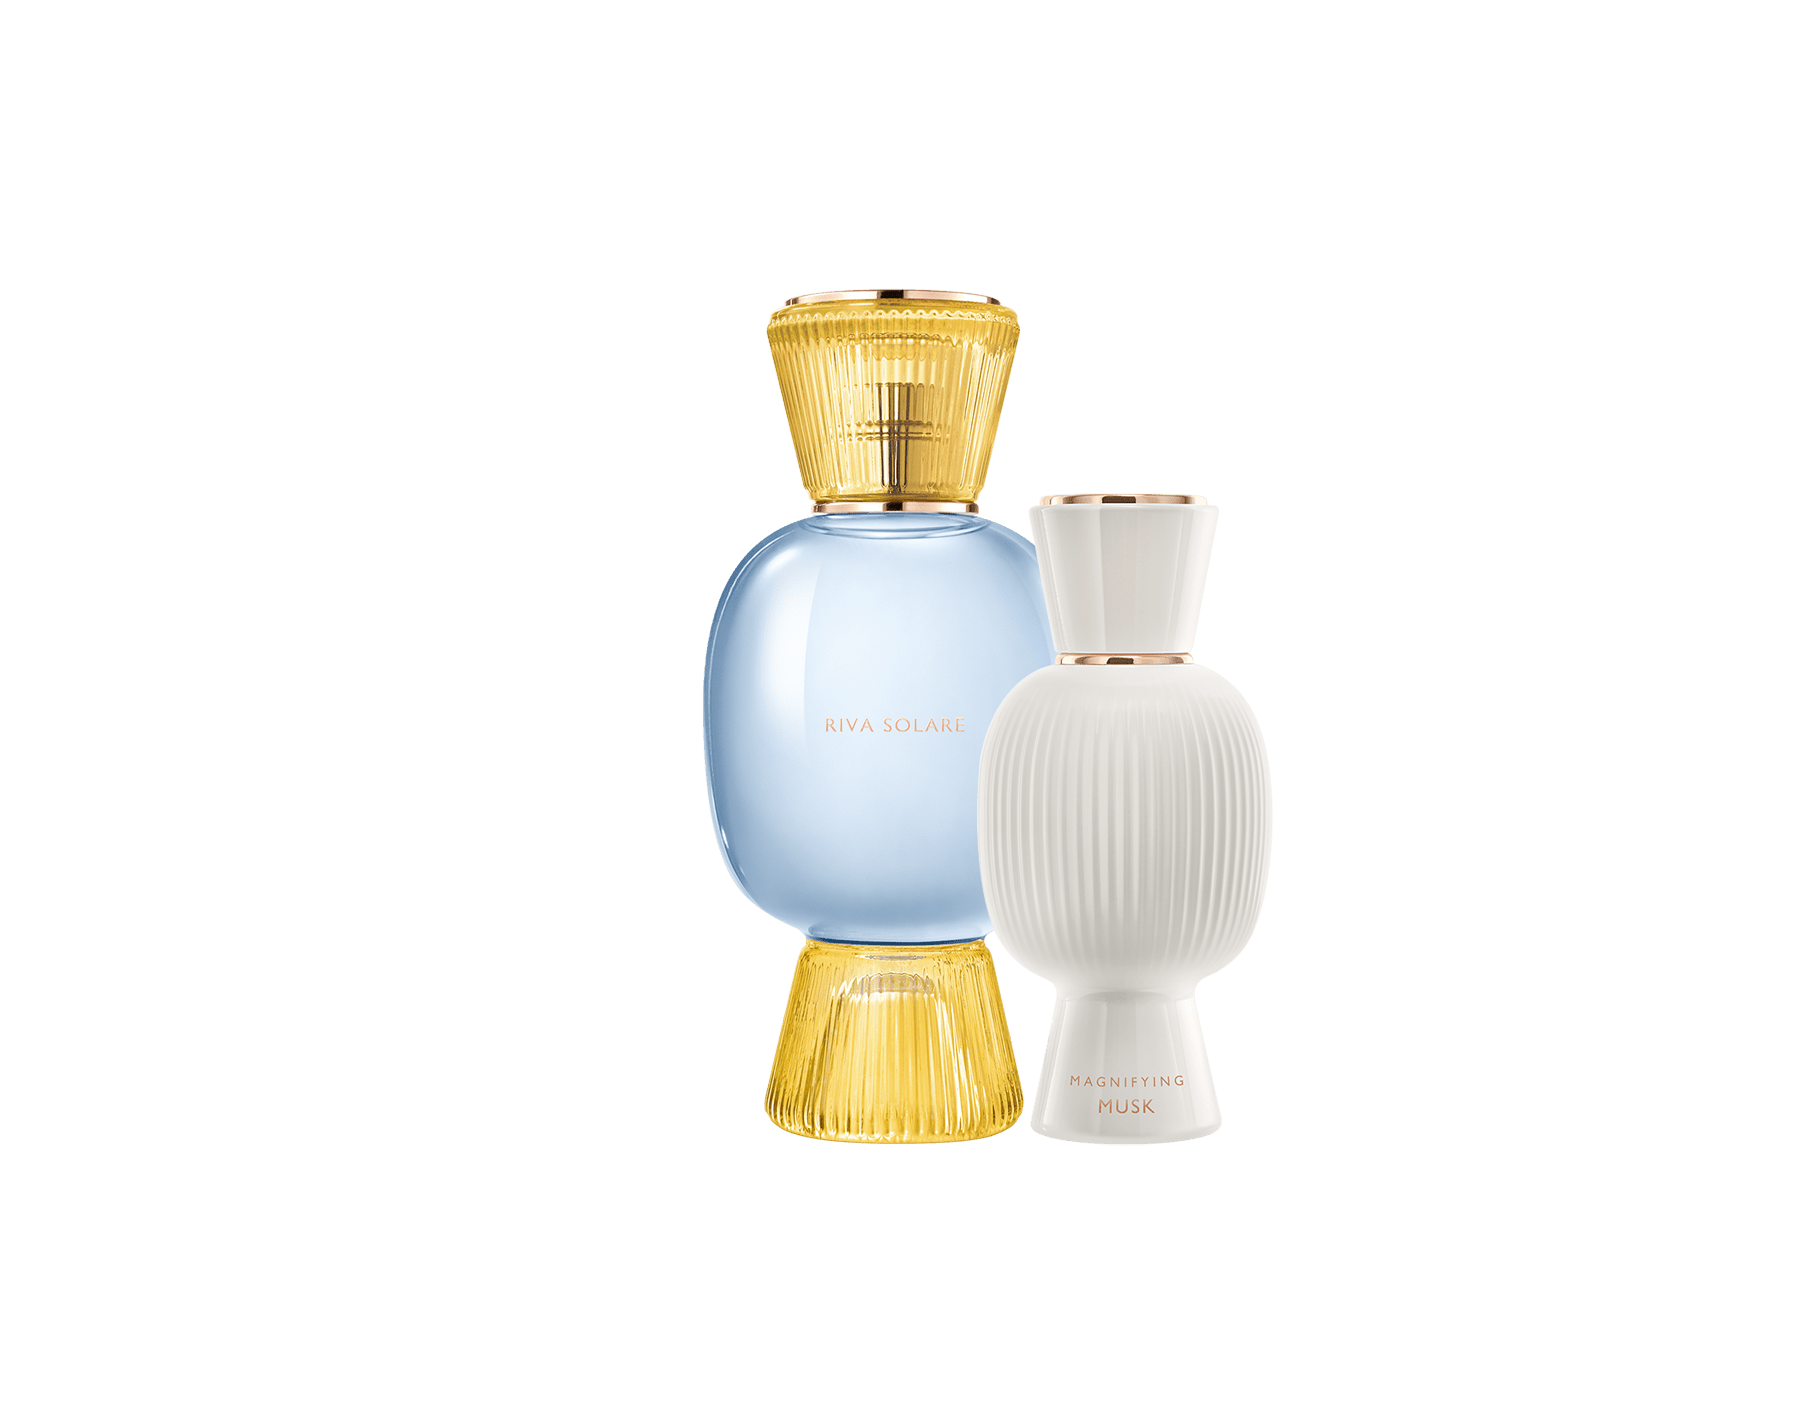 An exclusive perfume set, as bold and unique as you. The sparkling citrus Riva Solare Allegra Eau de Parfum blends with the warm touch of the Magnifying Musk Essence, creating an irresistible personalised women's perfume. Perfume-Set-Riva-Solare-Eau-de-Parfum-and-Musk-Magnifying image 1